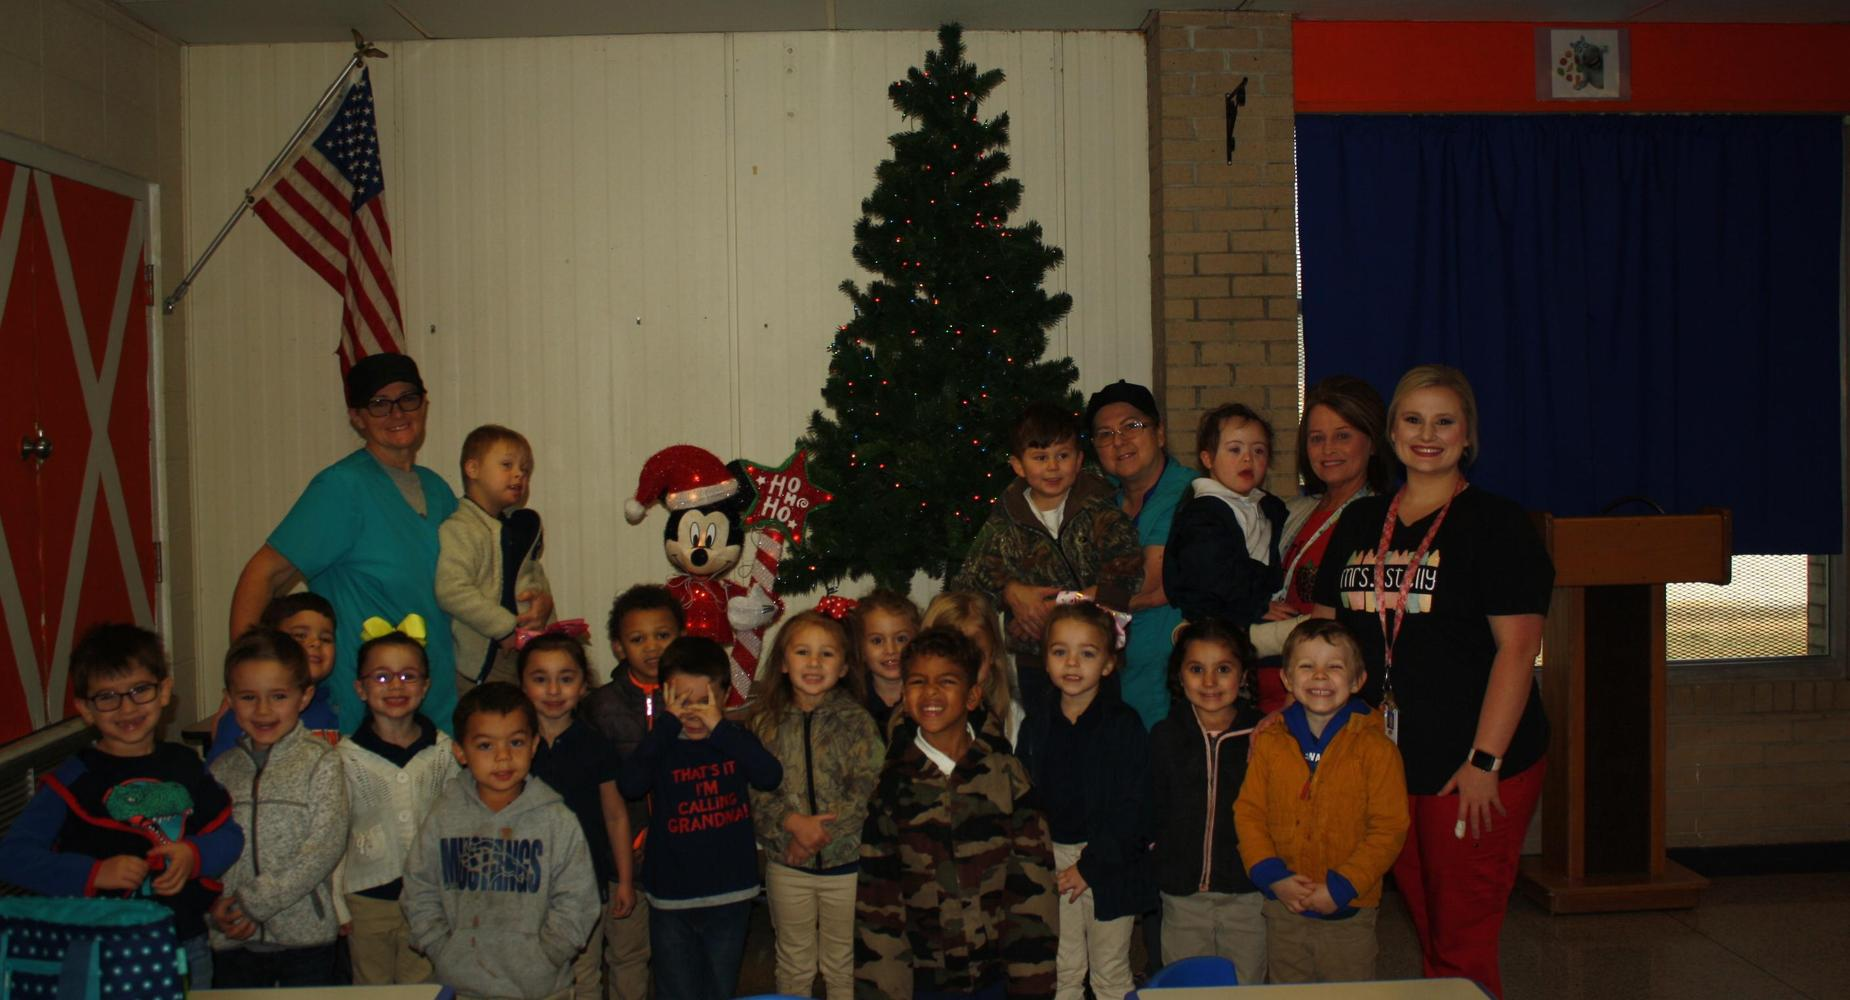 Pre-K students standing next to Christmas tree